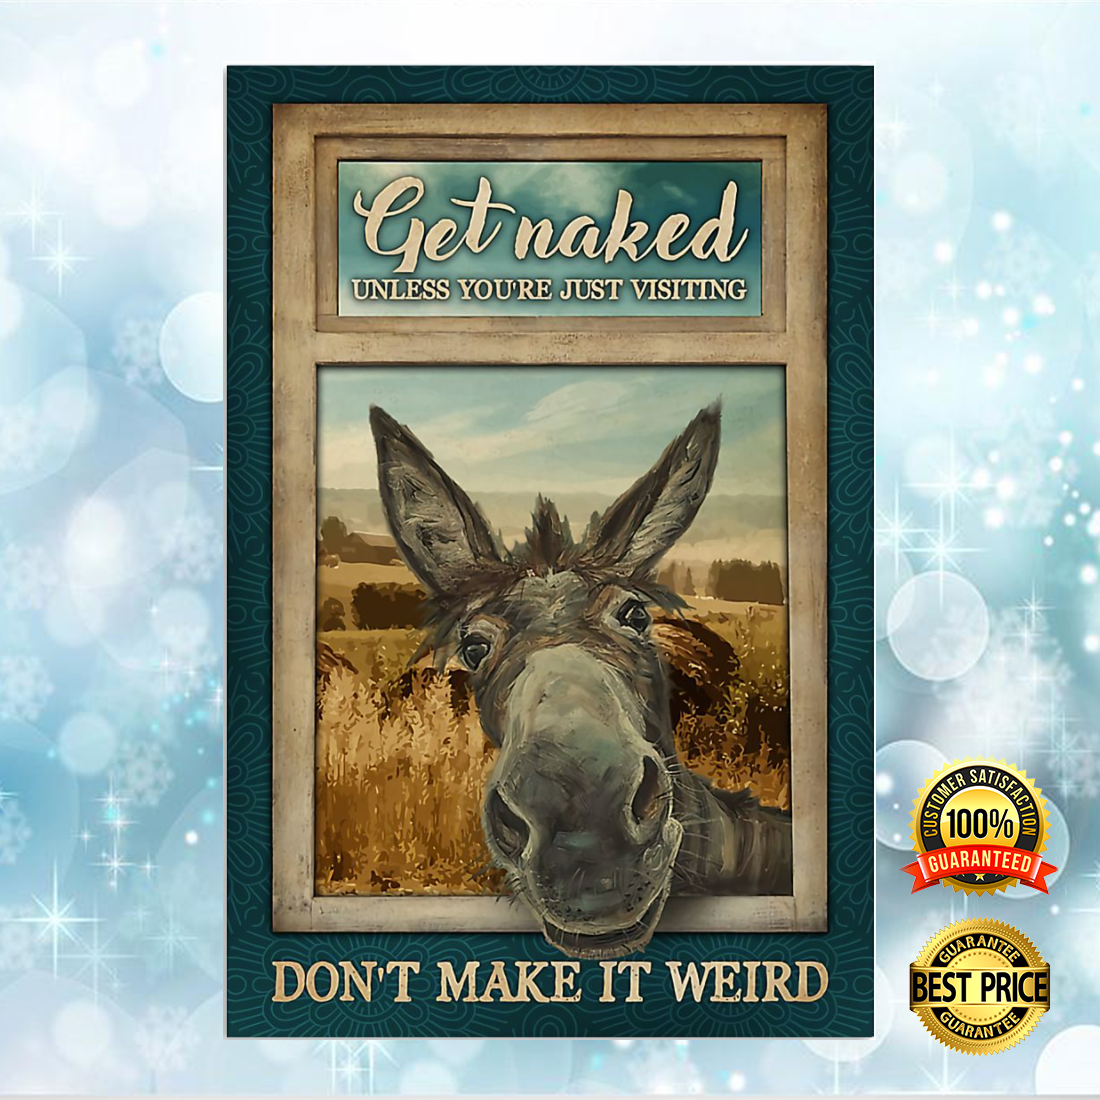 DONKEY GET NAKED UNLESS YOU ARE JUST VISITING DON'T MAKE IT WEIRD POSTER 6